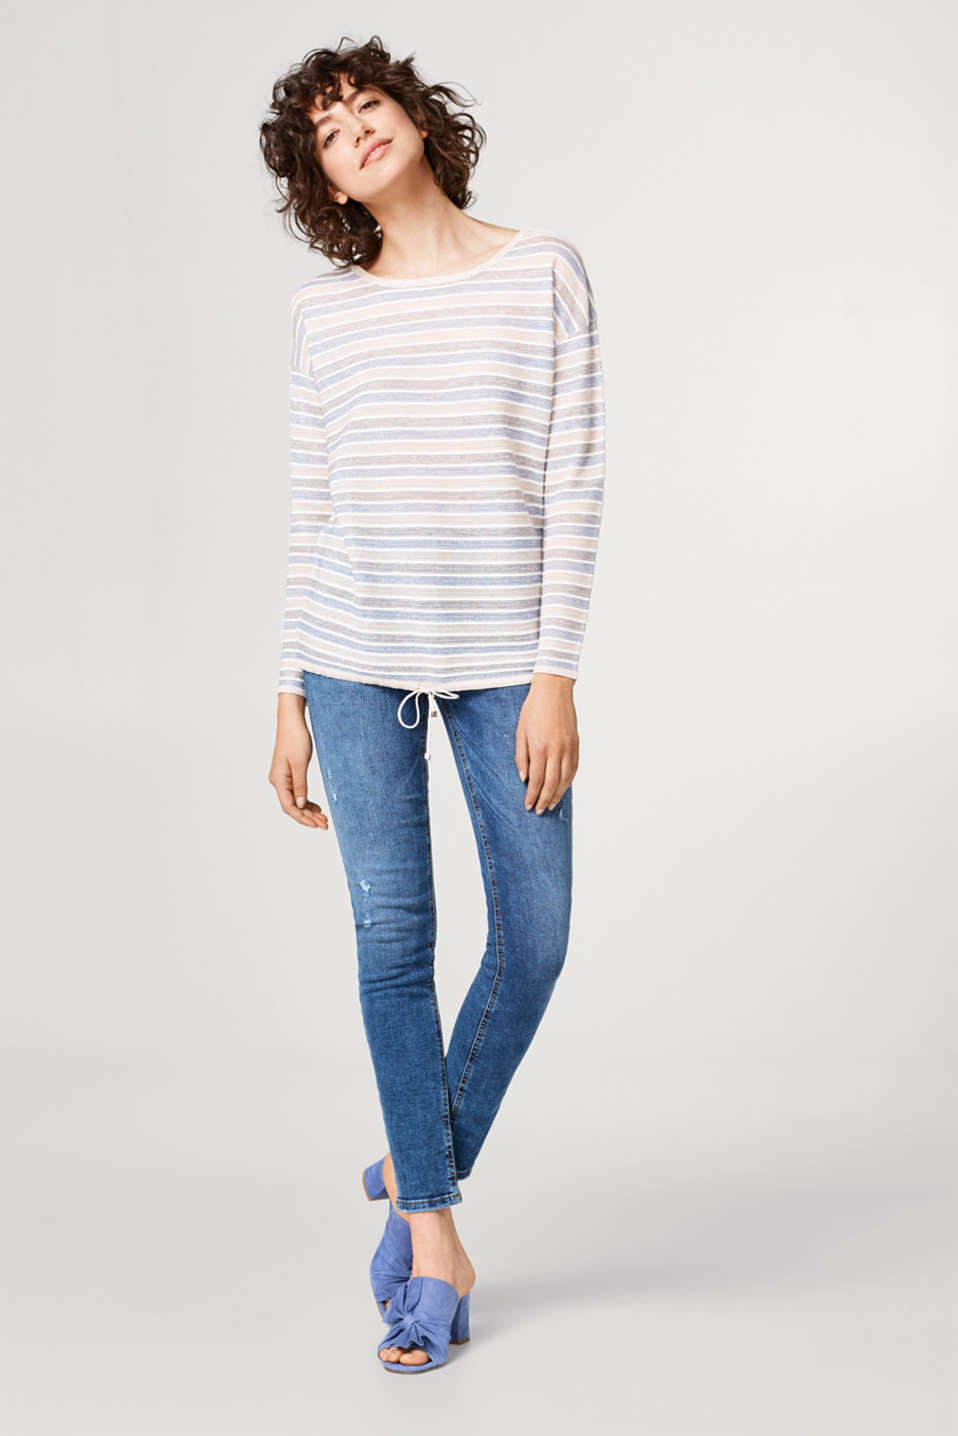 Striped sweater with a subtle shimmer